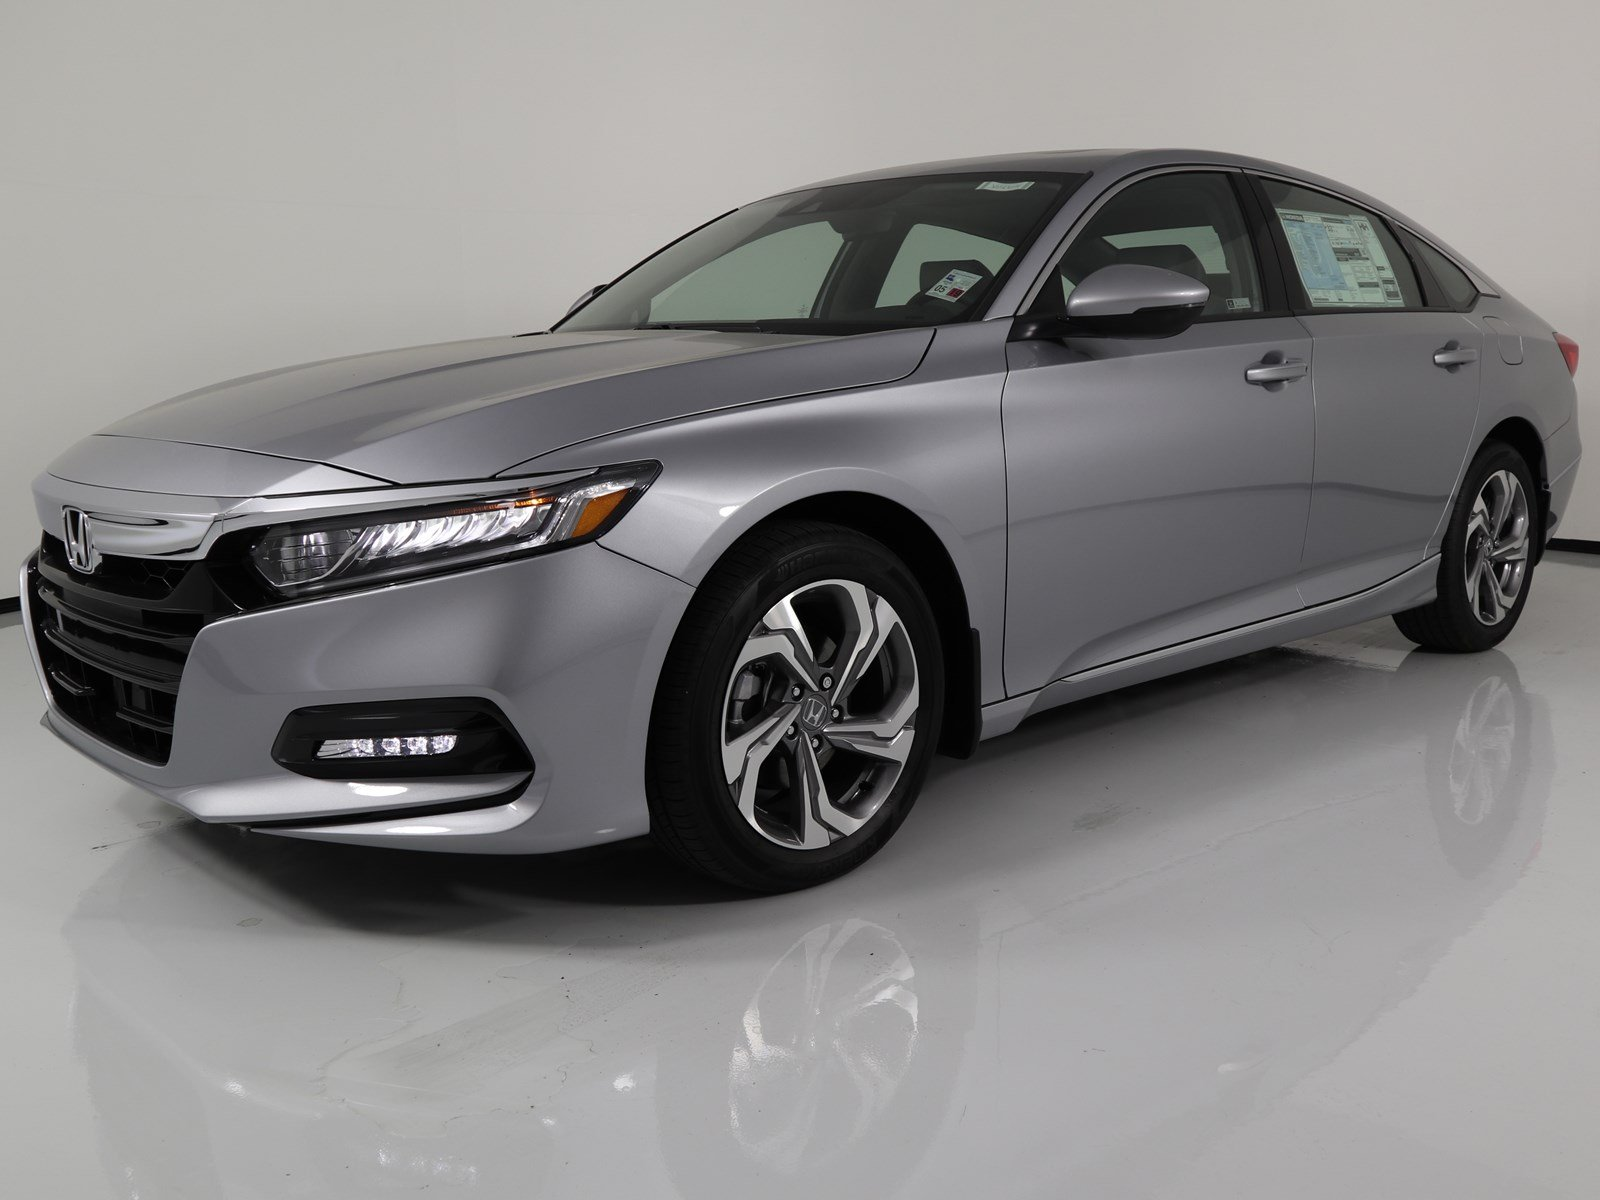 New 2018 Honda Accord Sedan EX L Navi 4dr Car in Bossier City